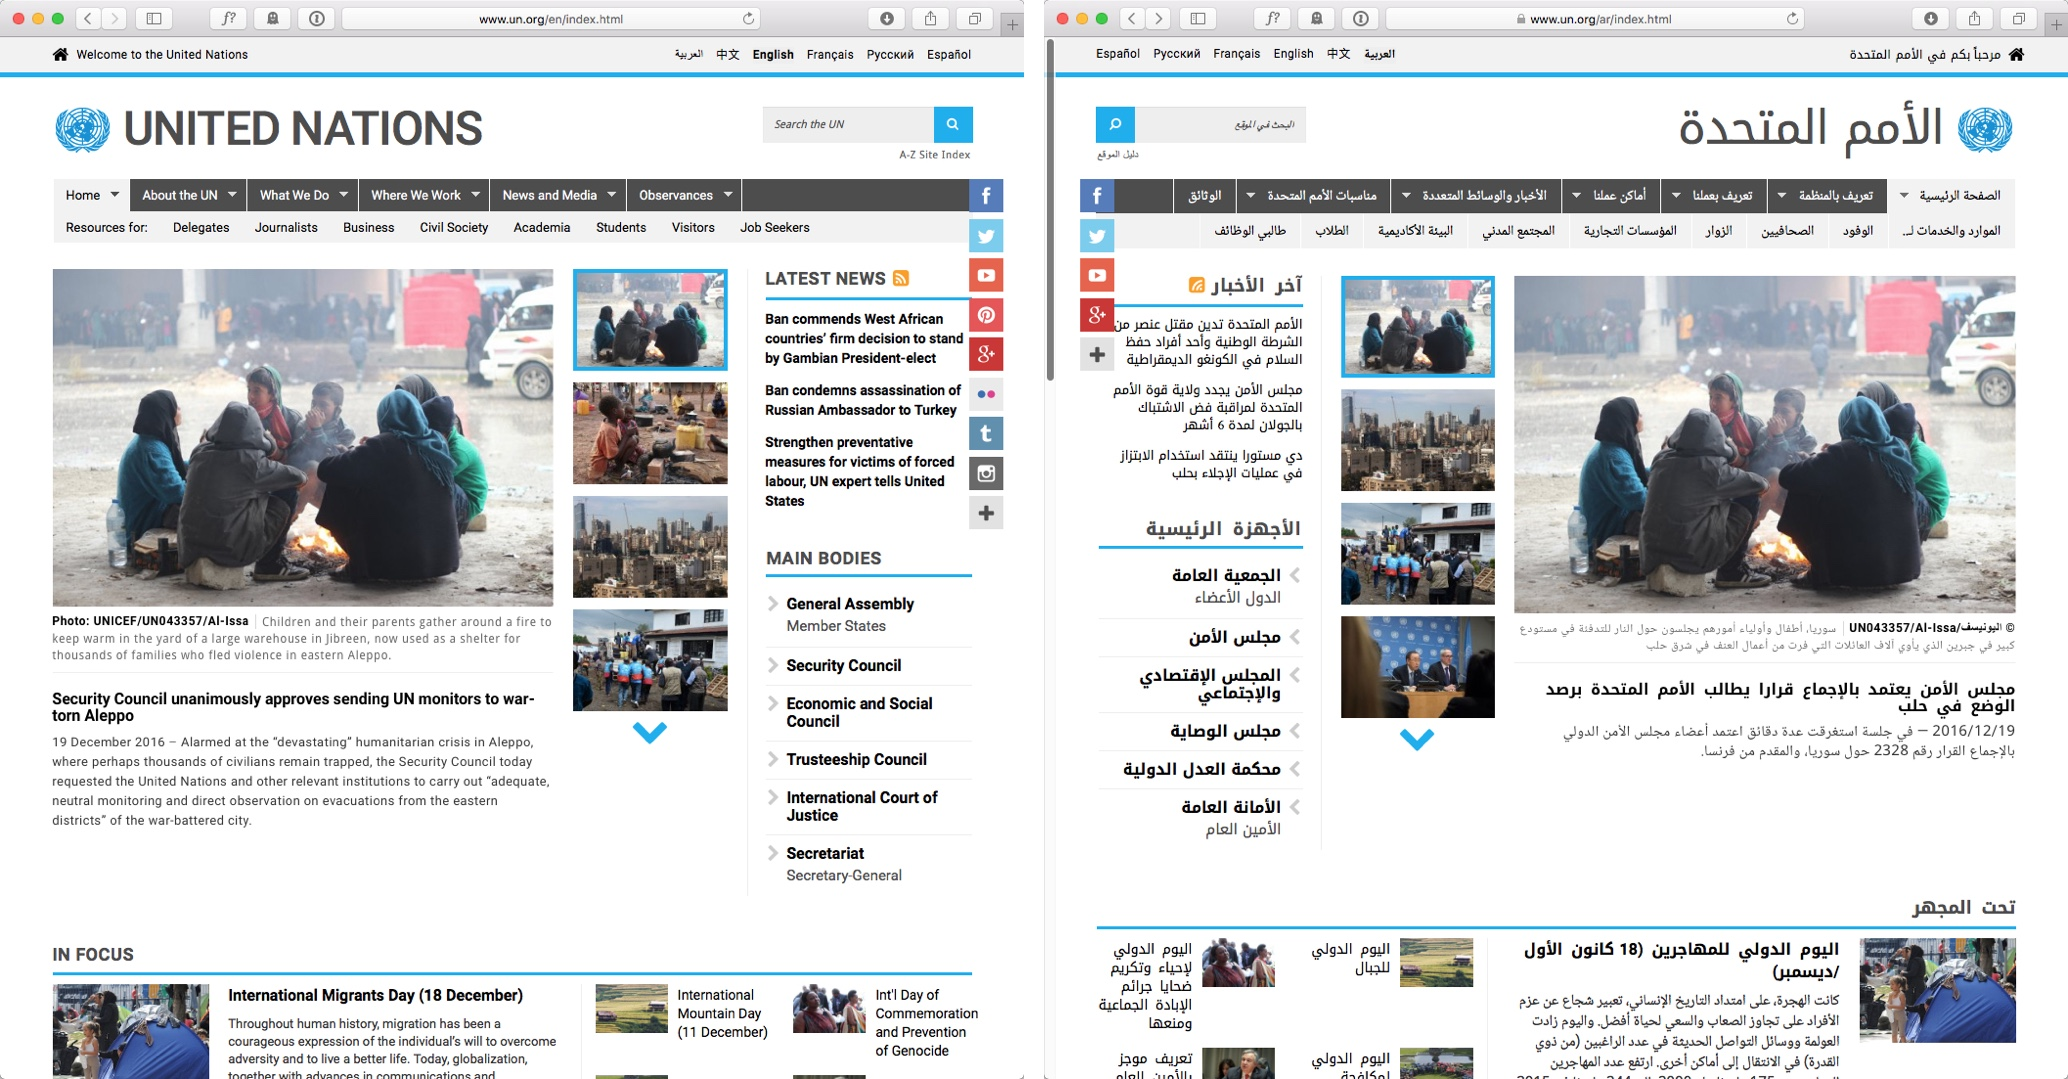 Two side by side screenshots of the United Nations site, comparing English and Arabic layouts.